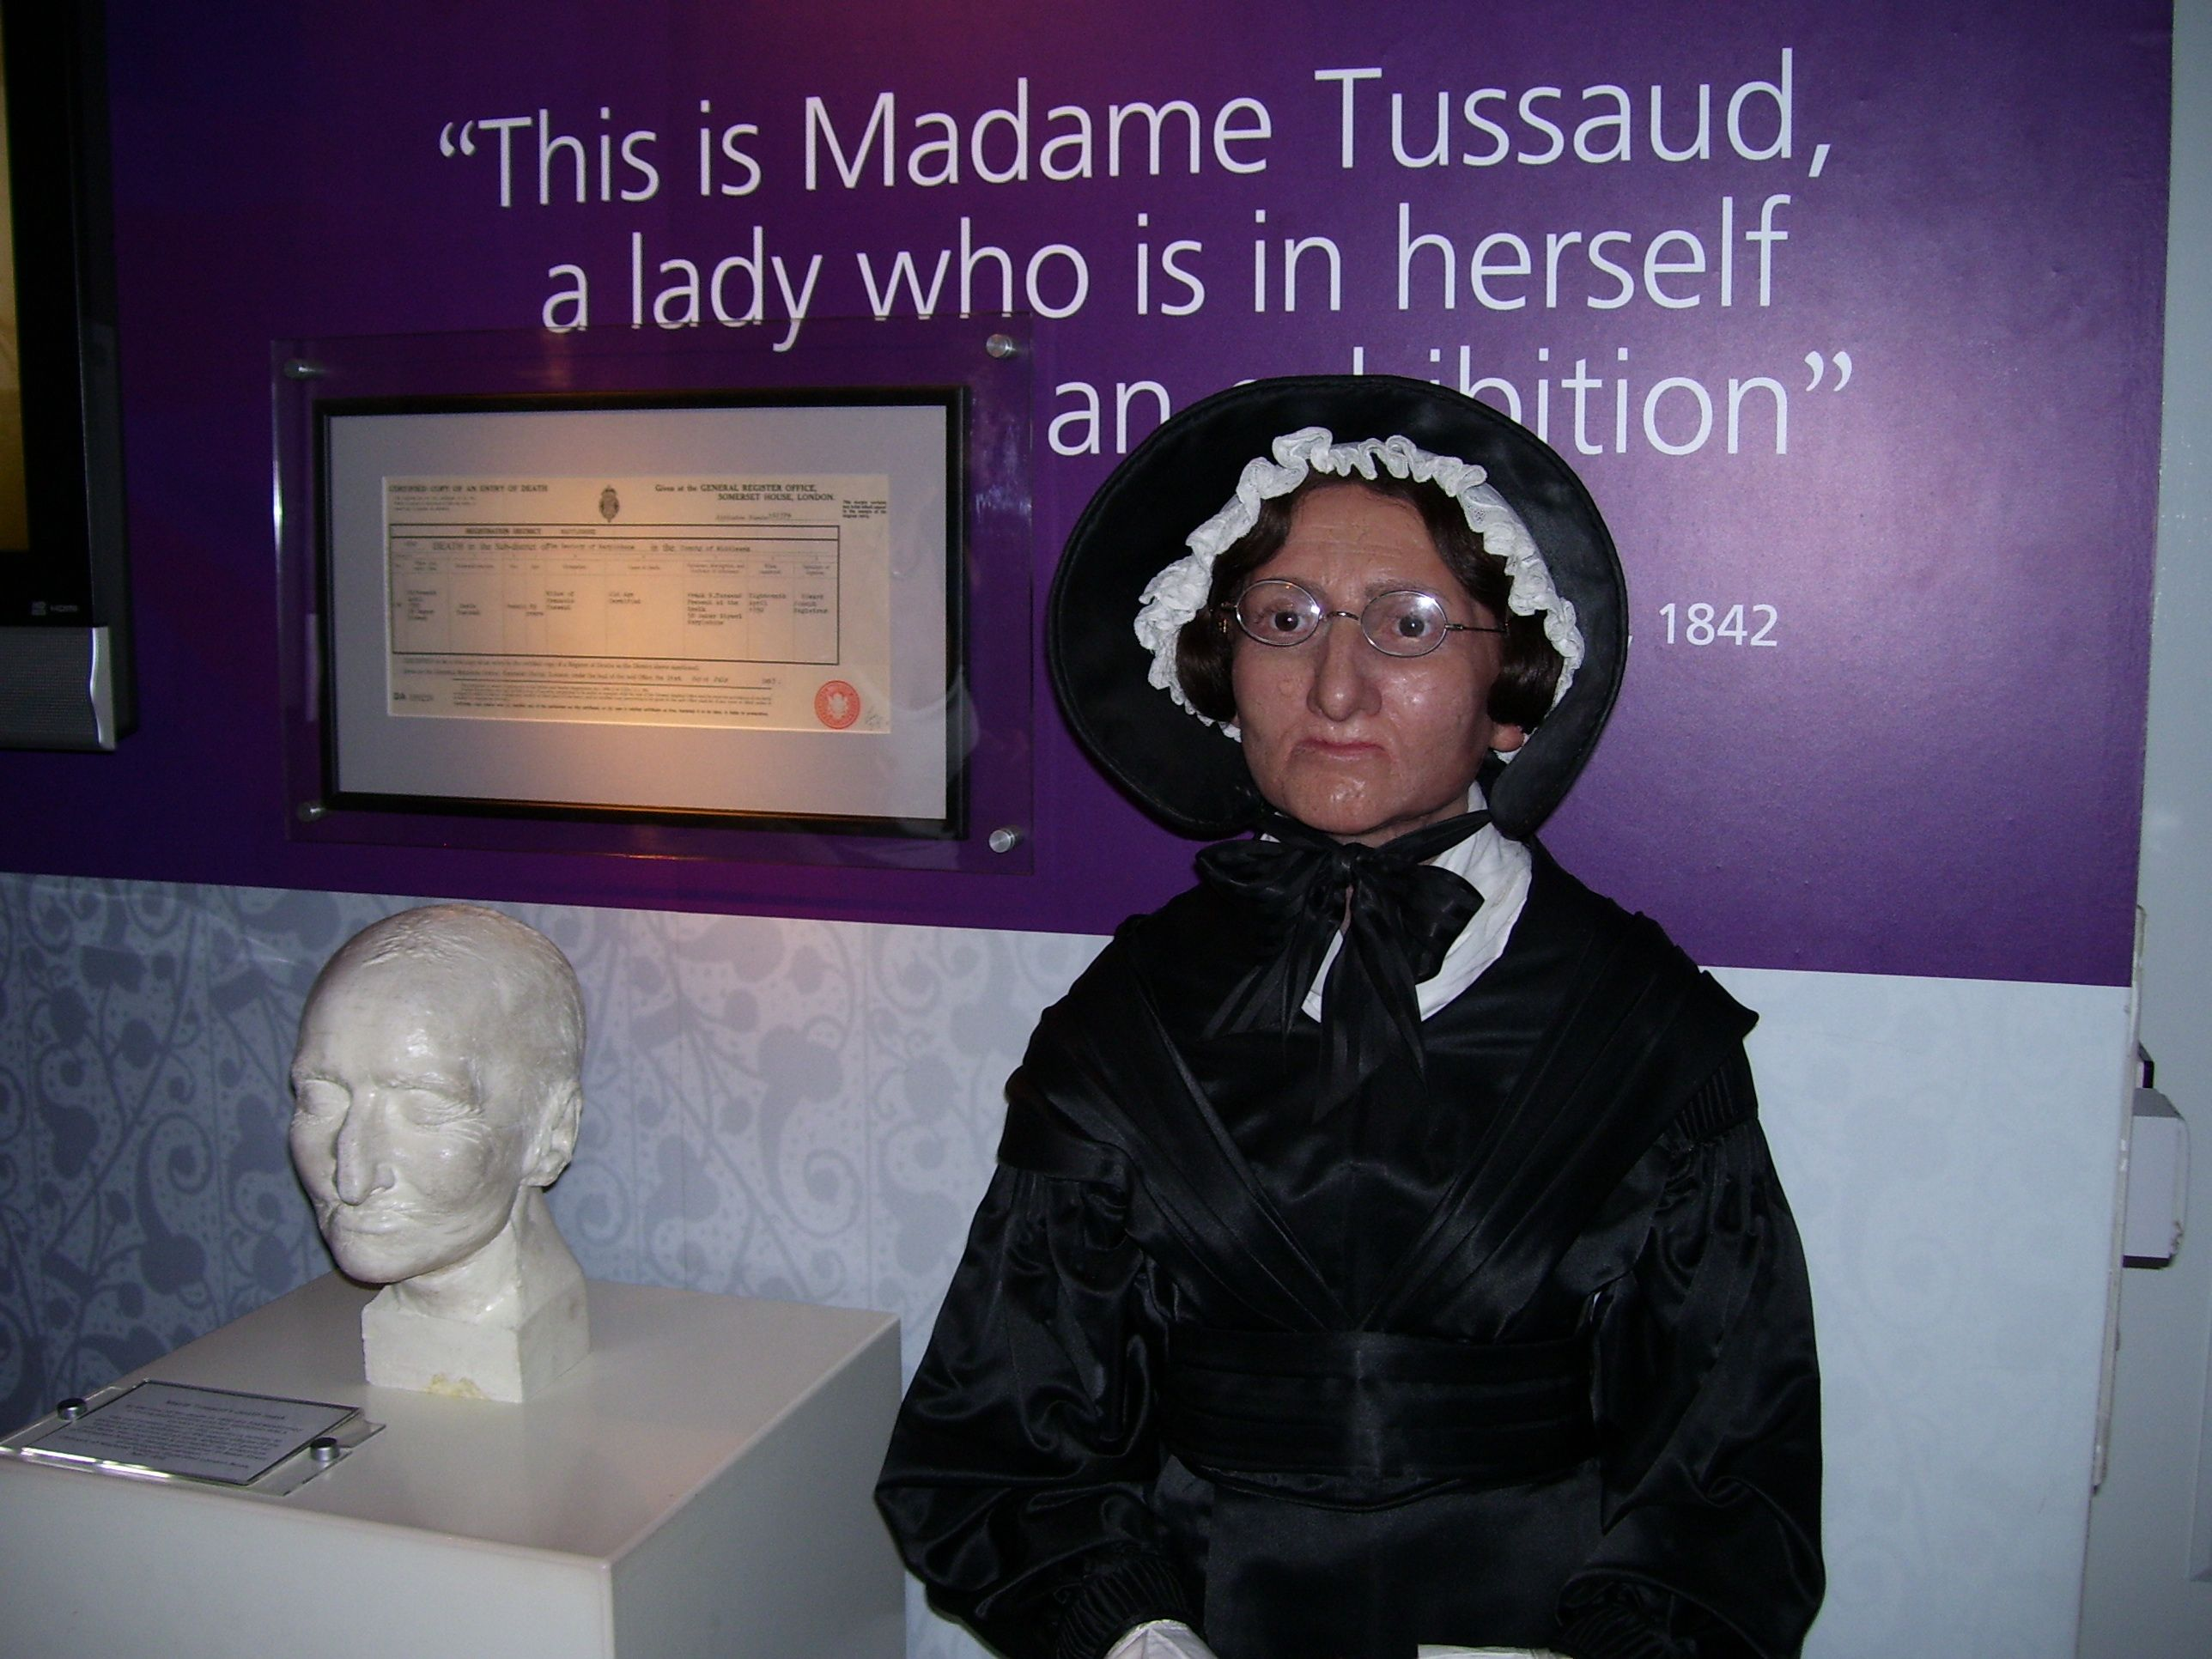 Madame Tussaud London Anna Maria Tussaud Nee Grosholtz 1 December 1761 16 April 1850 Was An Artist Known For He Madame Tussauds London History Wax Museum